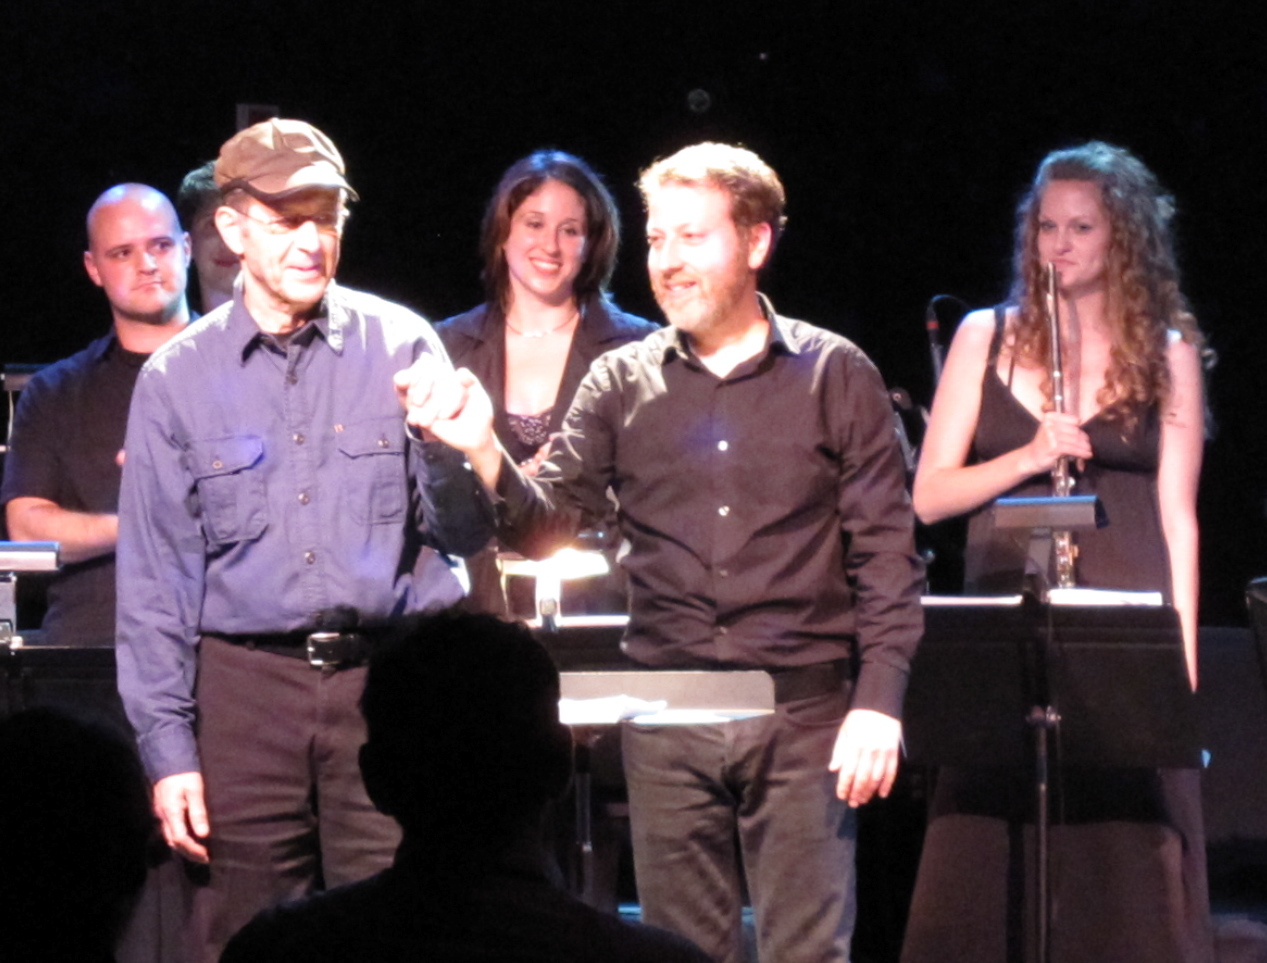 Composer Steve Reich and conductor Brad Lubman take their bows. (Copyright 2009, Steven P. Marsh)